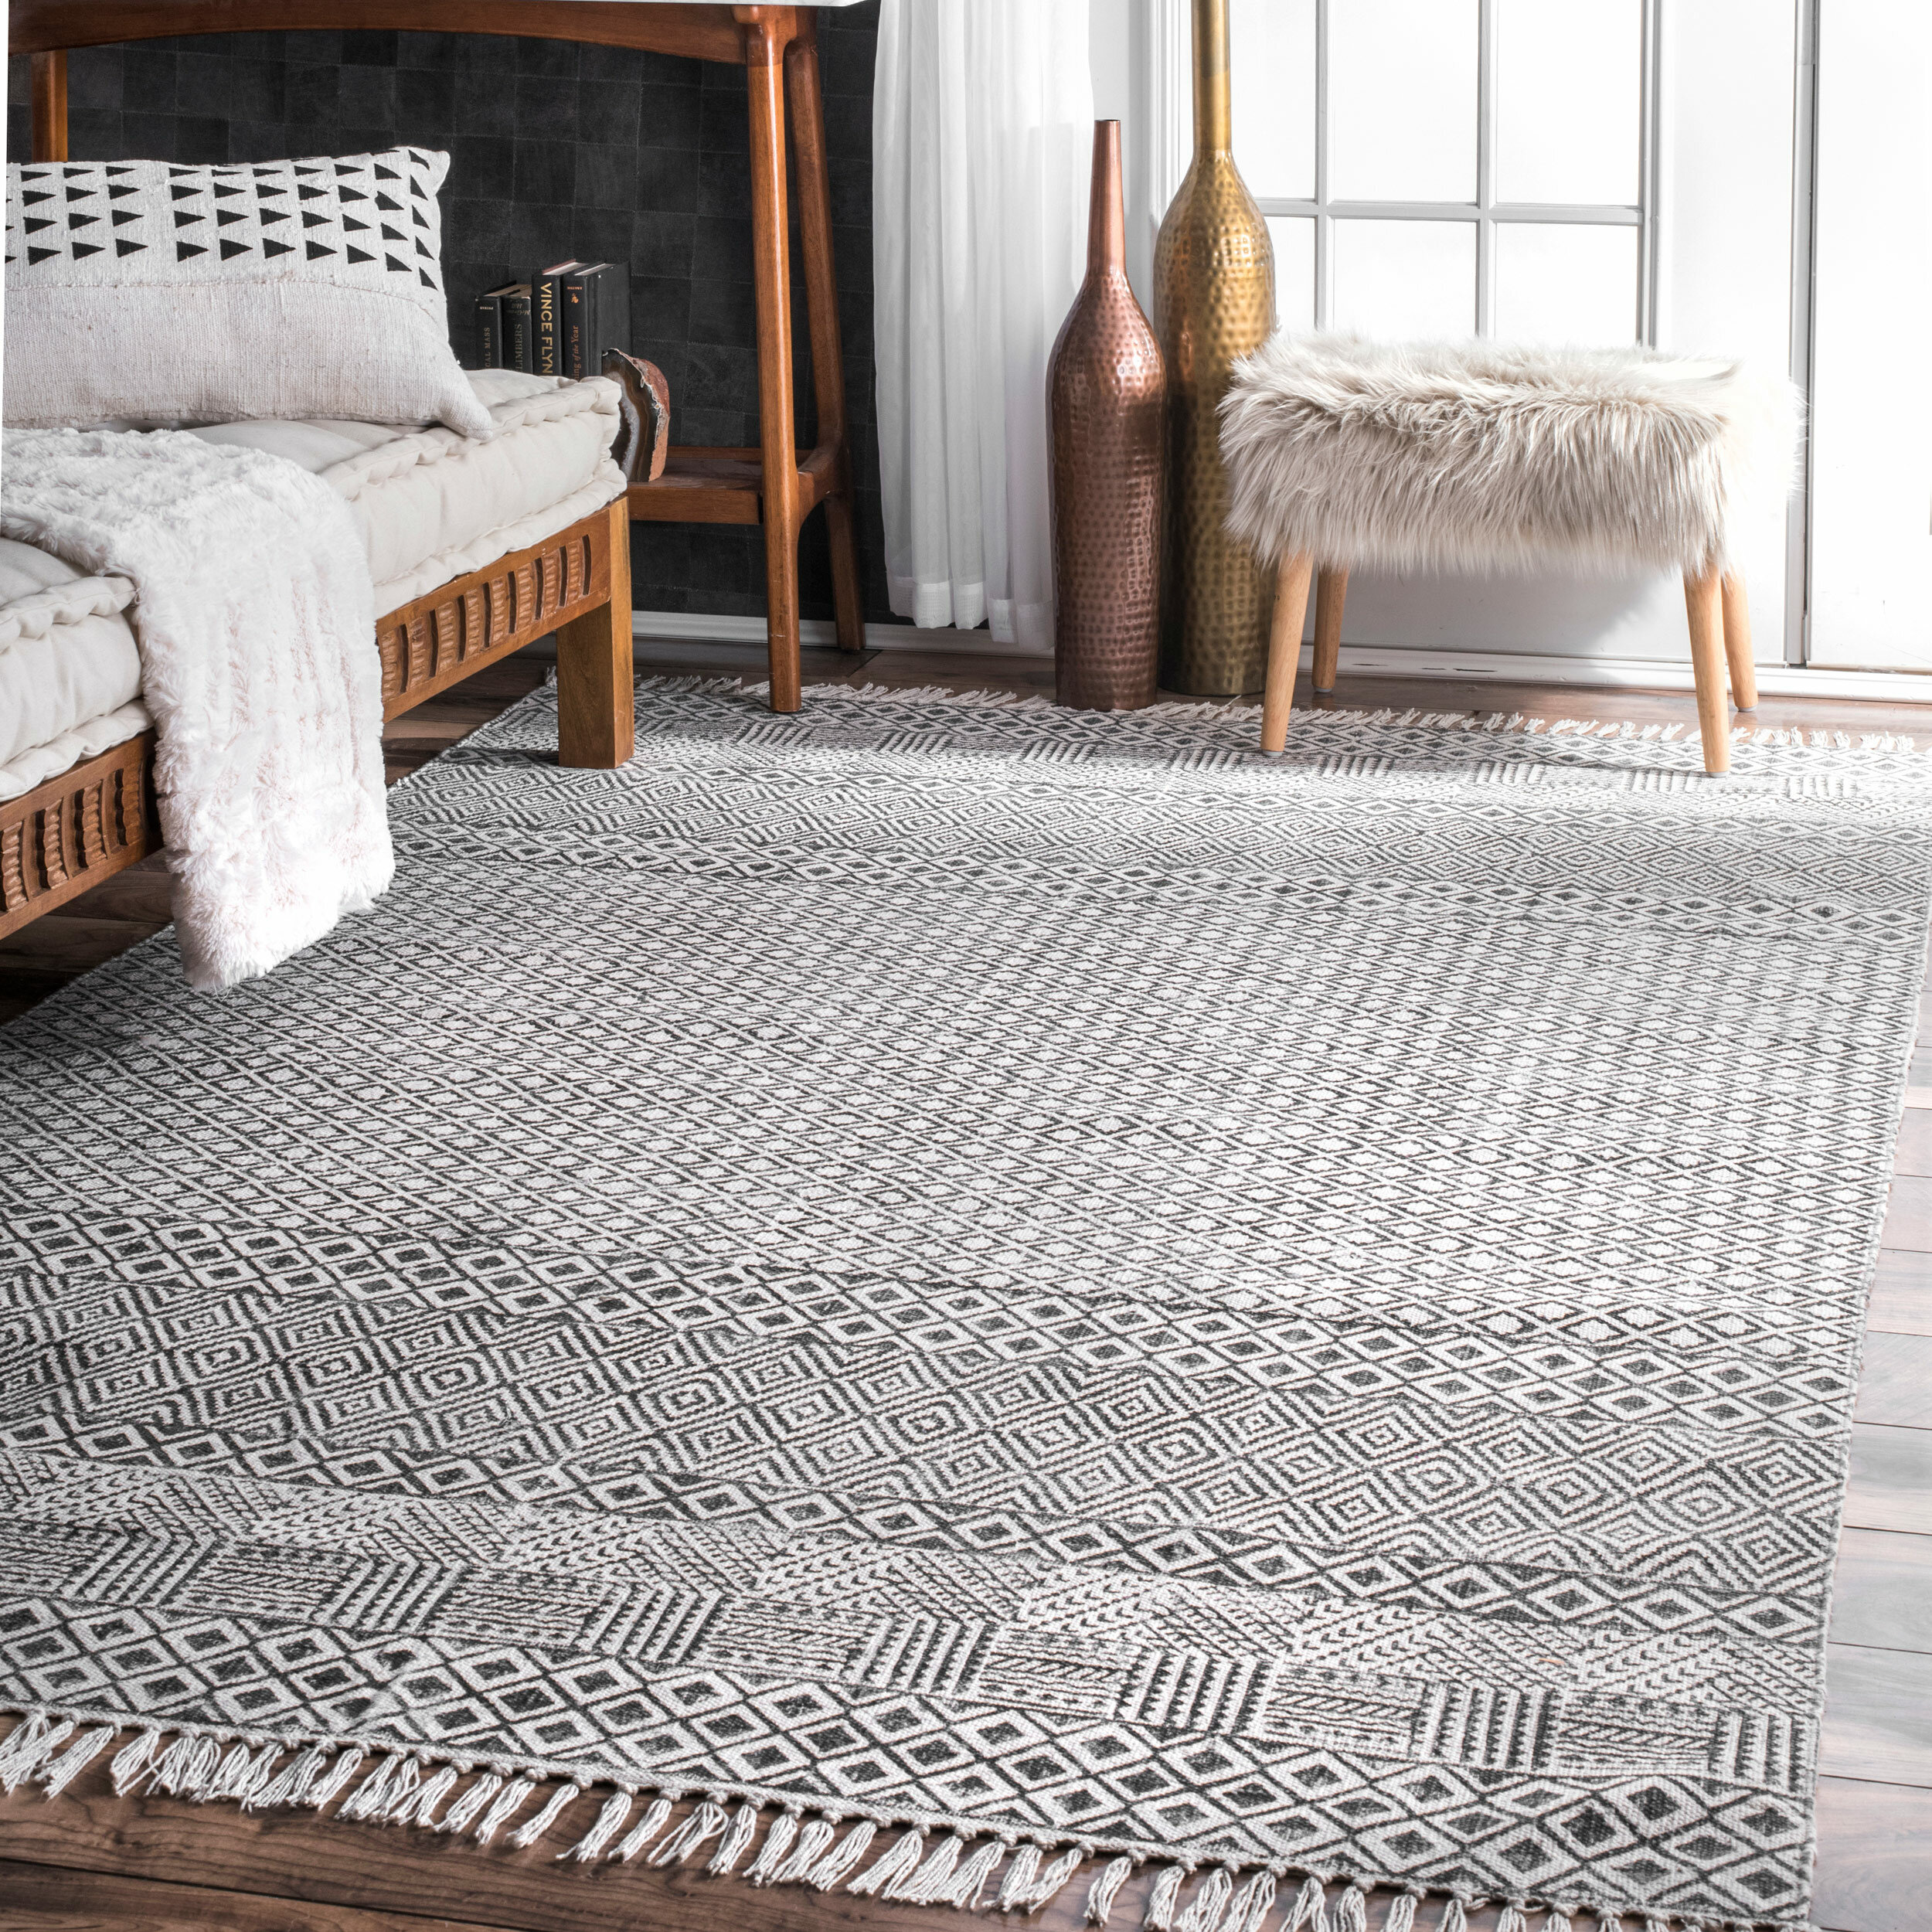 Lindy Hand Woven Gray Area Rug